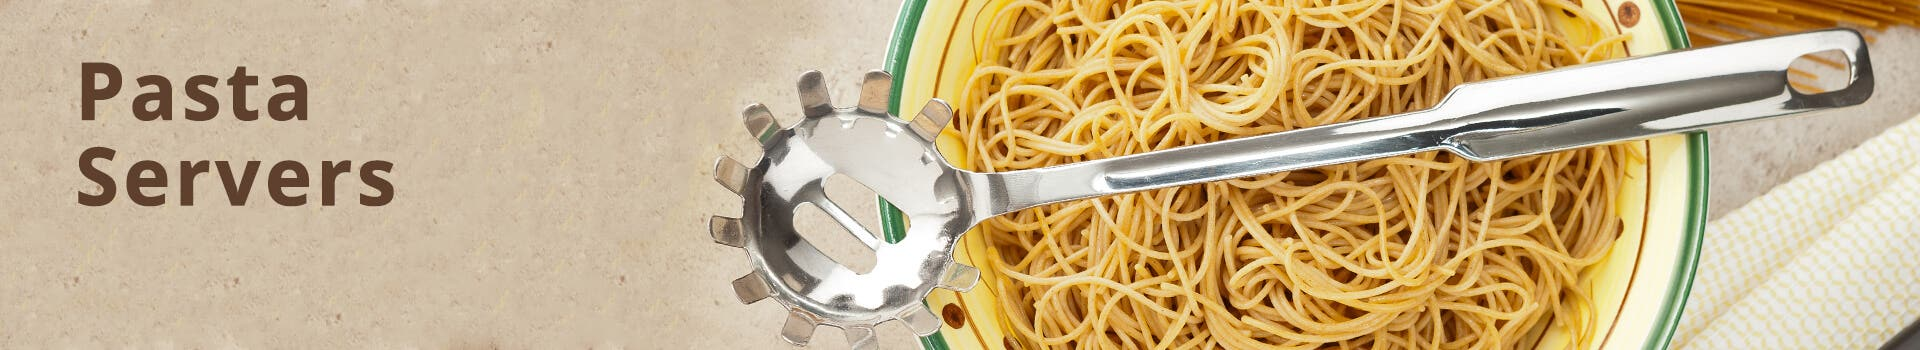 Stainless Steel Pasta Servers